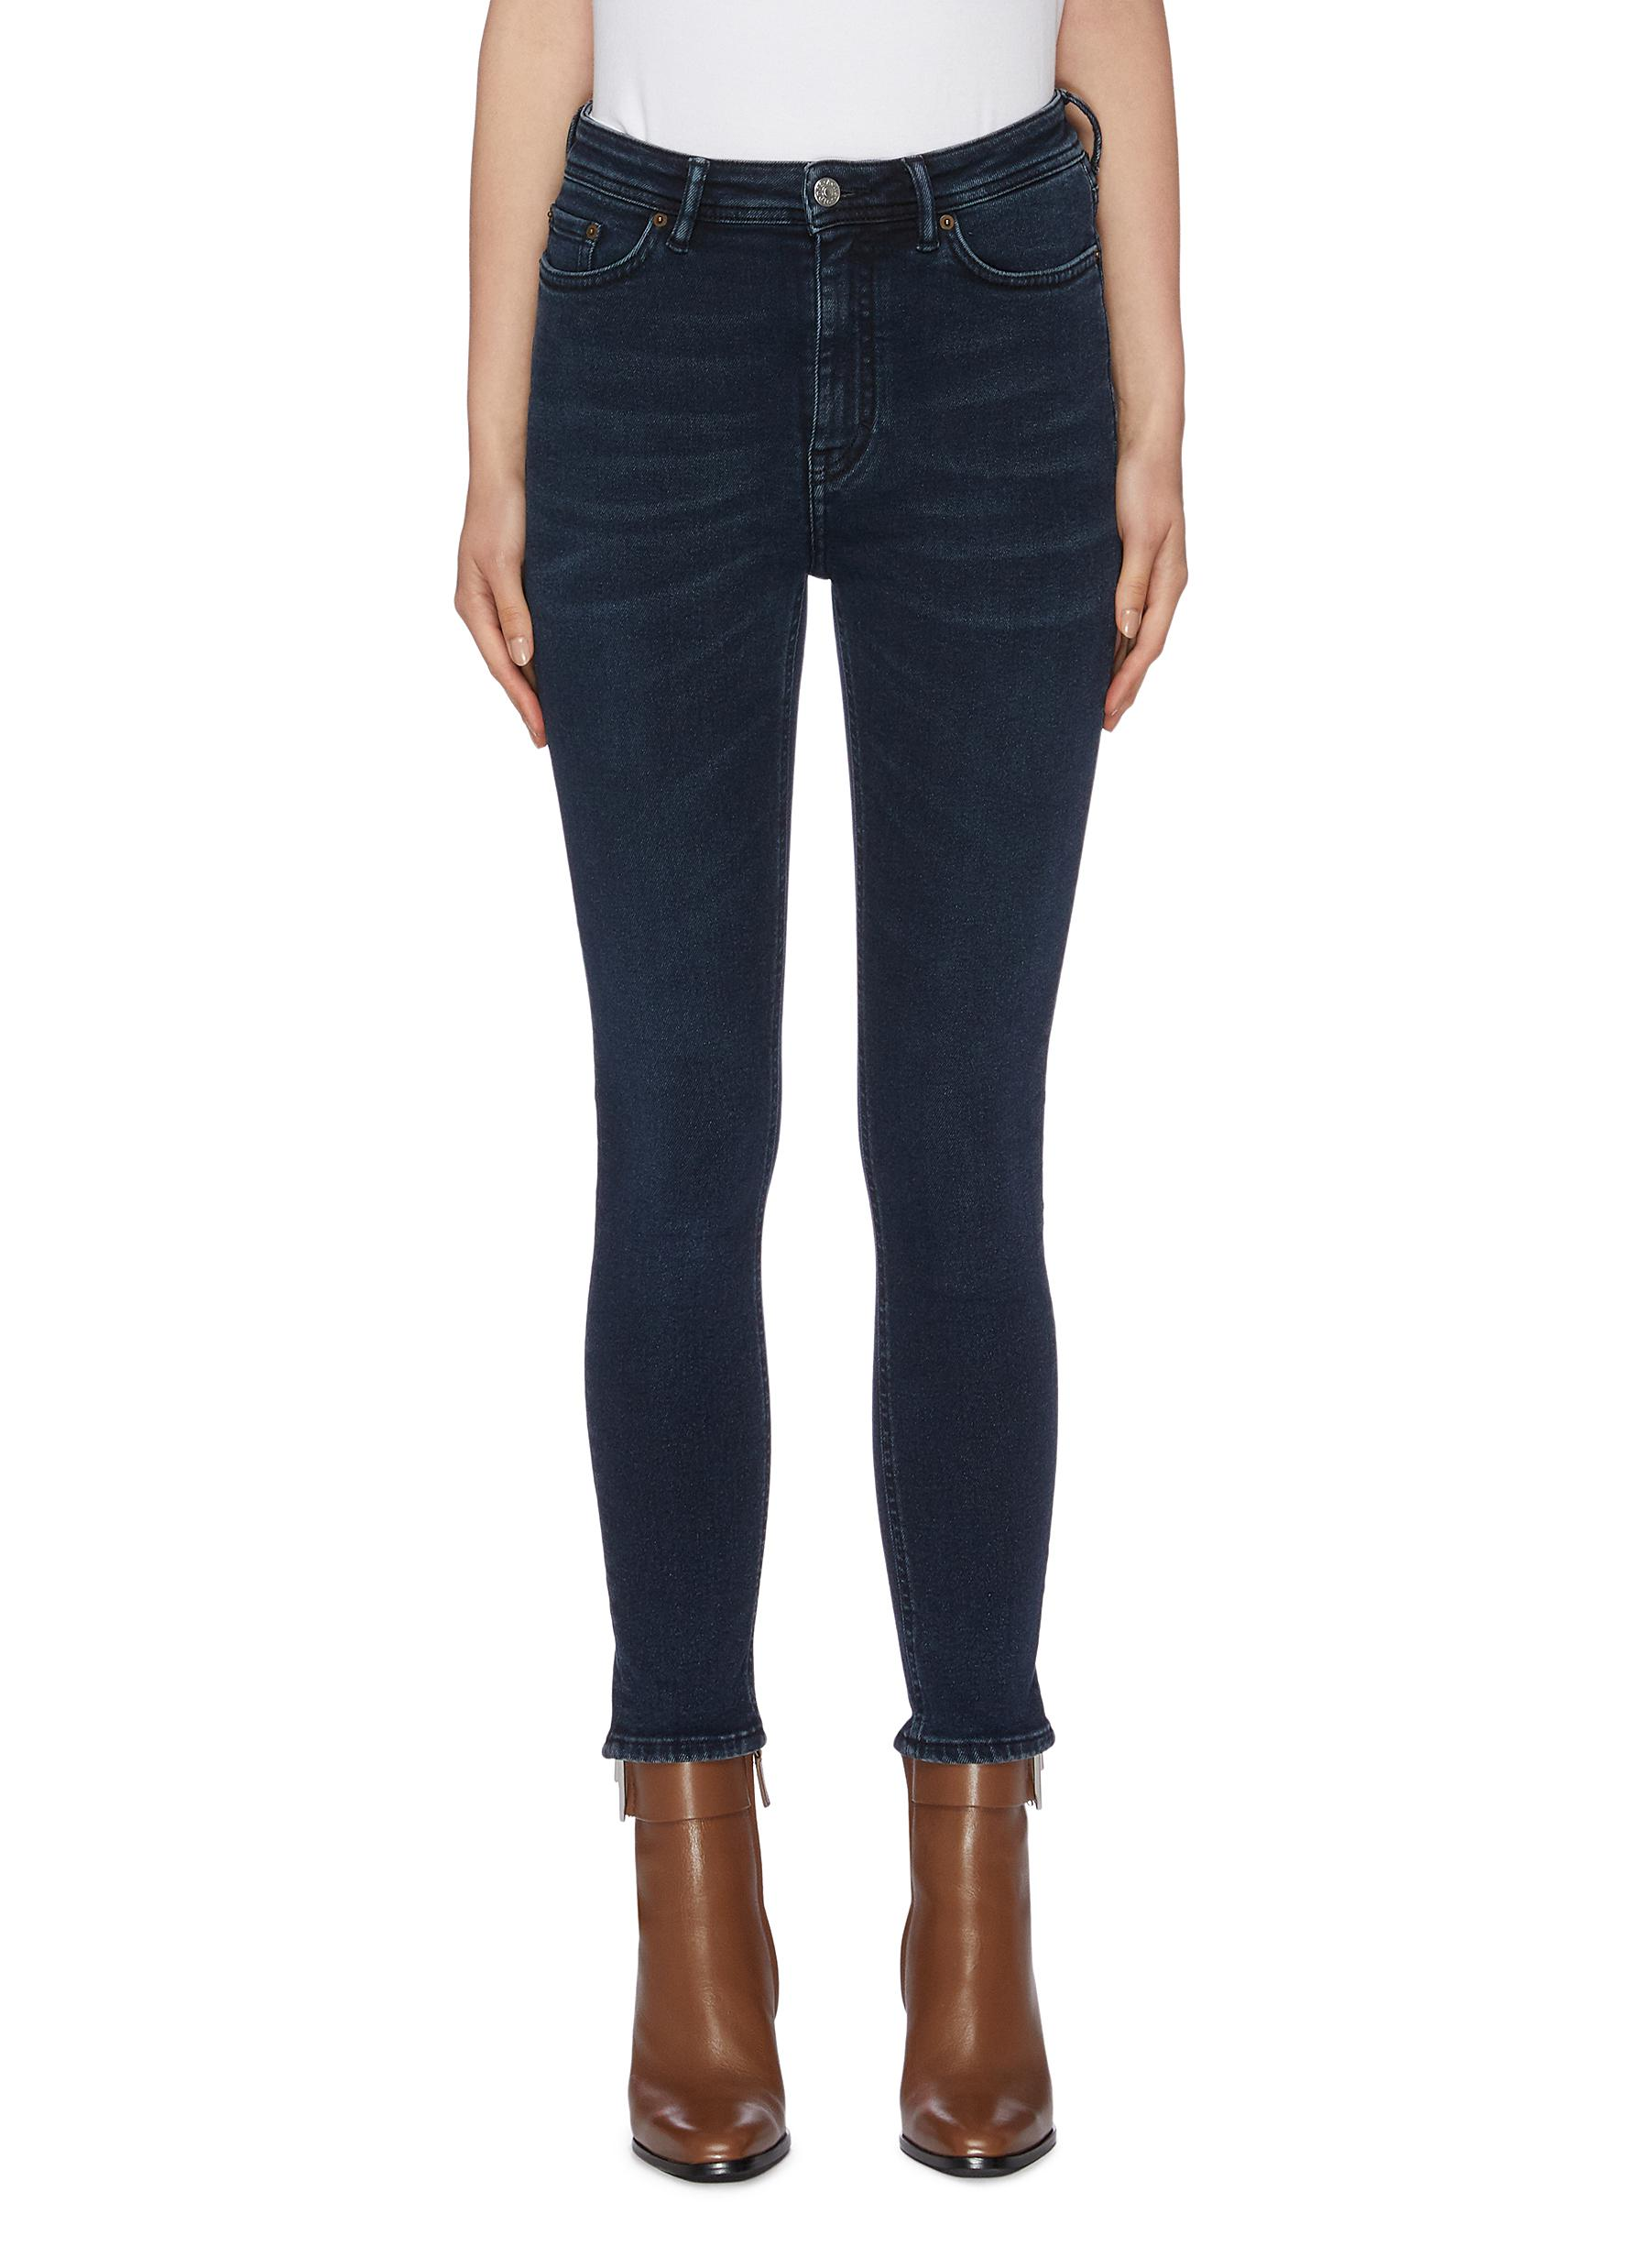 Peg washed skinny jeans by Acne Studios